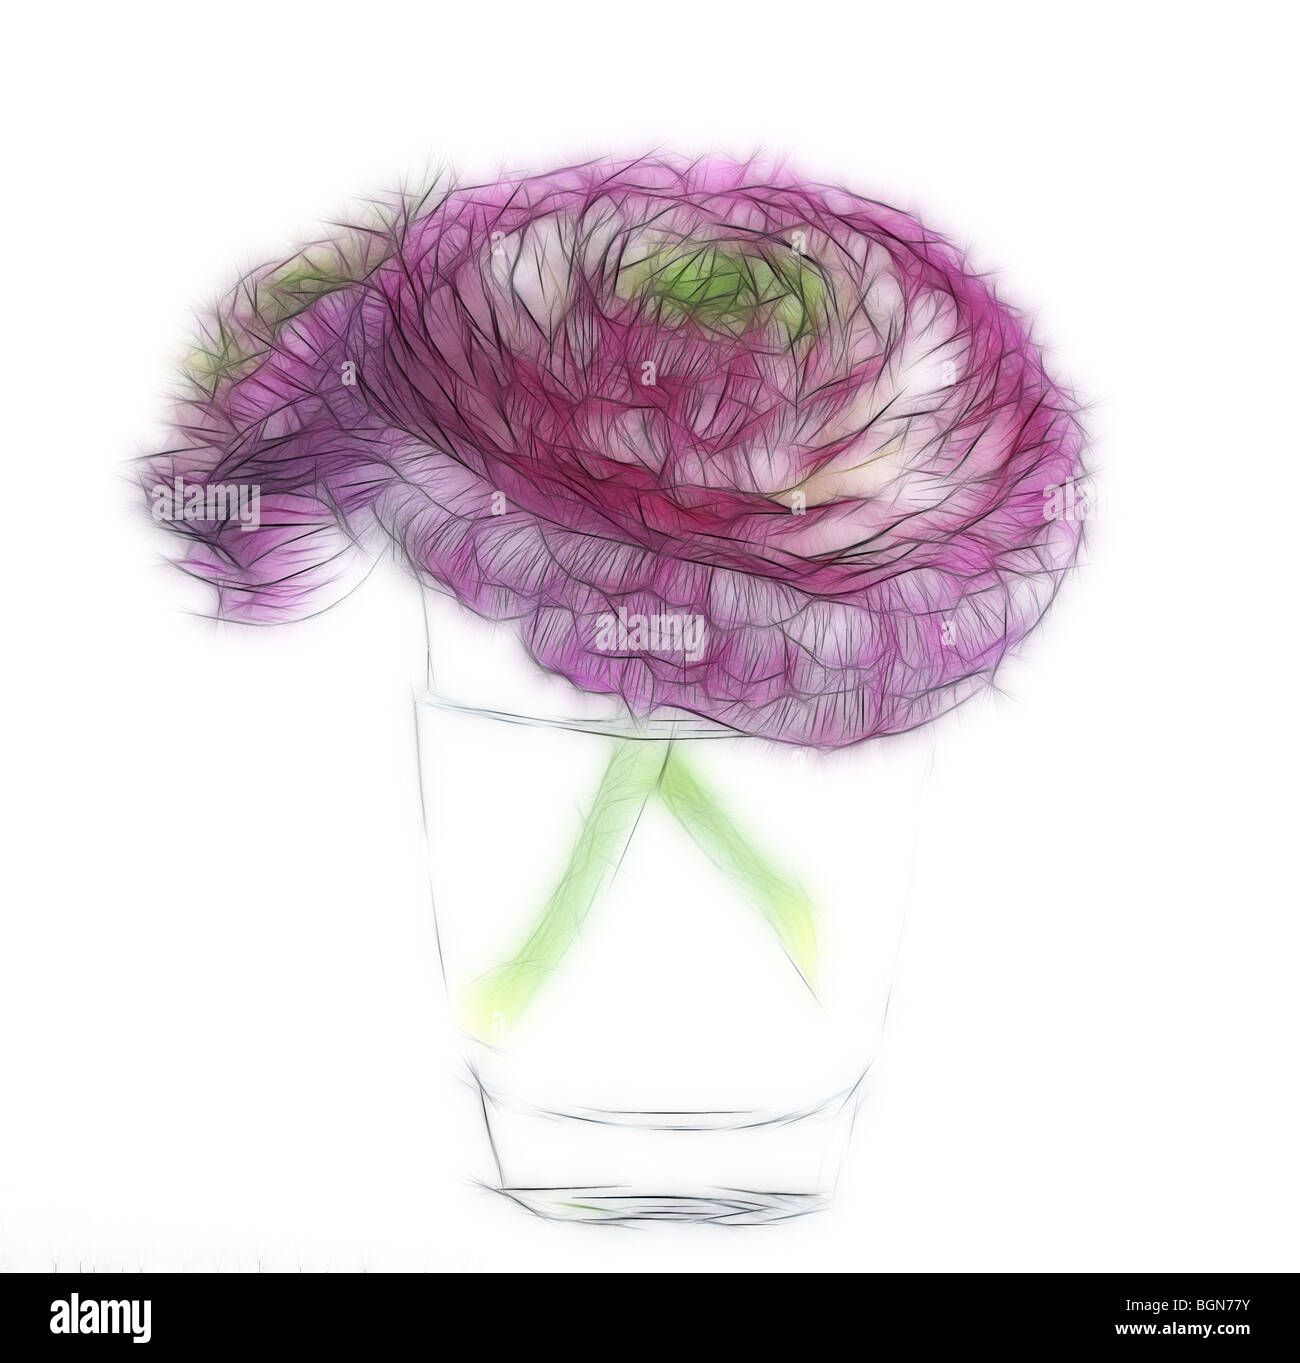 Photo illustration:  Two ranunculus flower heads in a glass vase on a white background - Stock Image